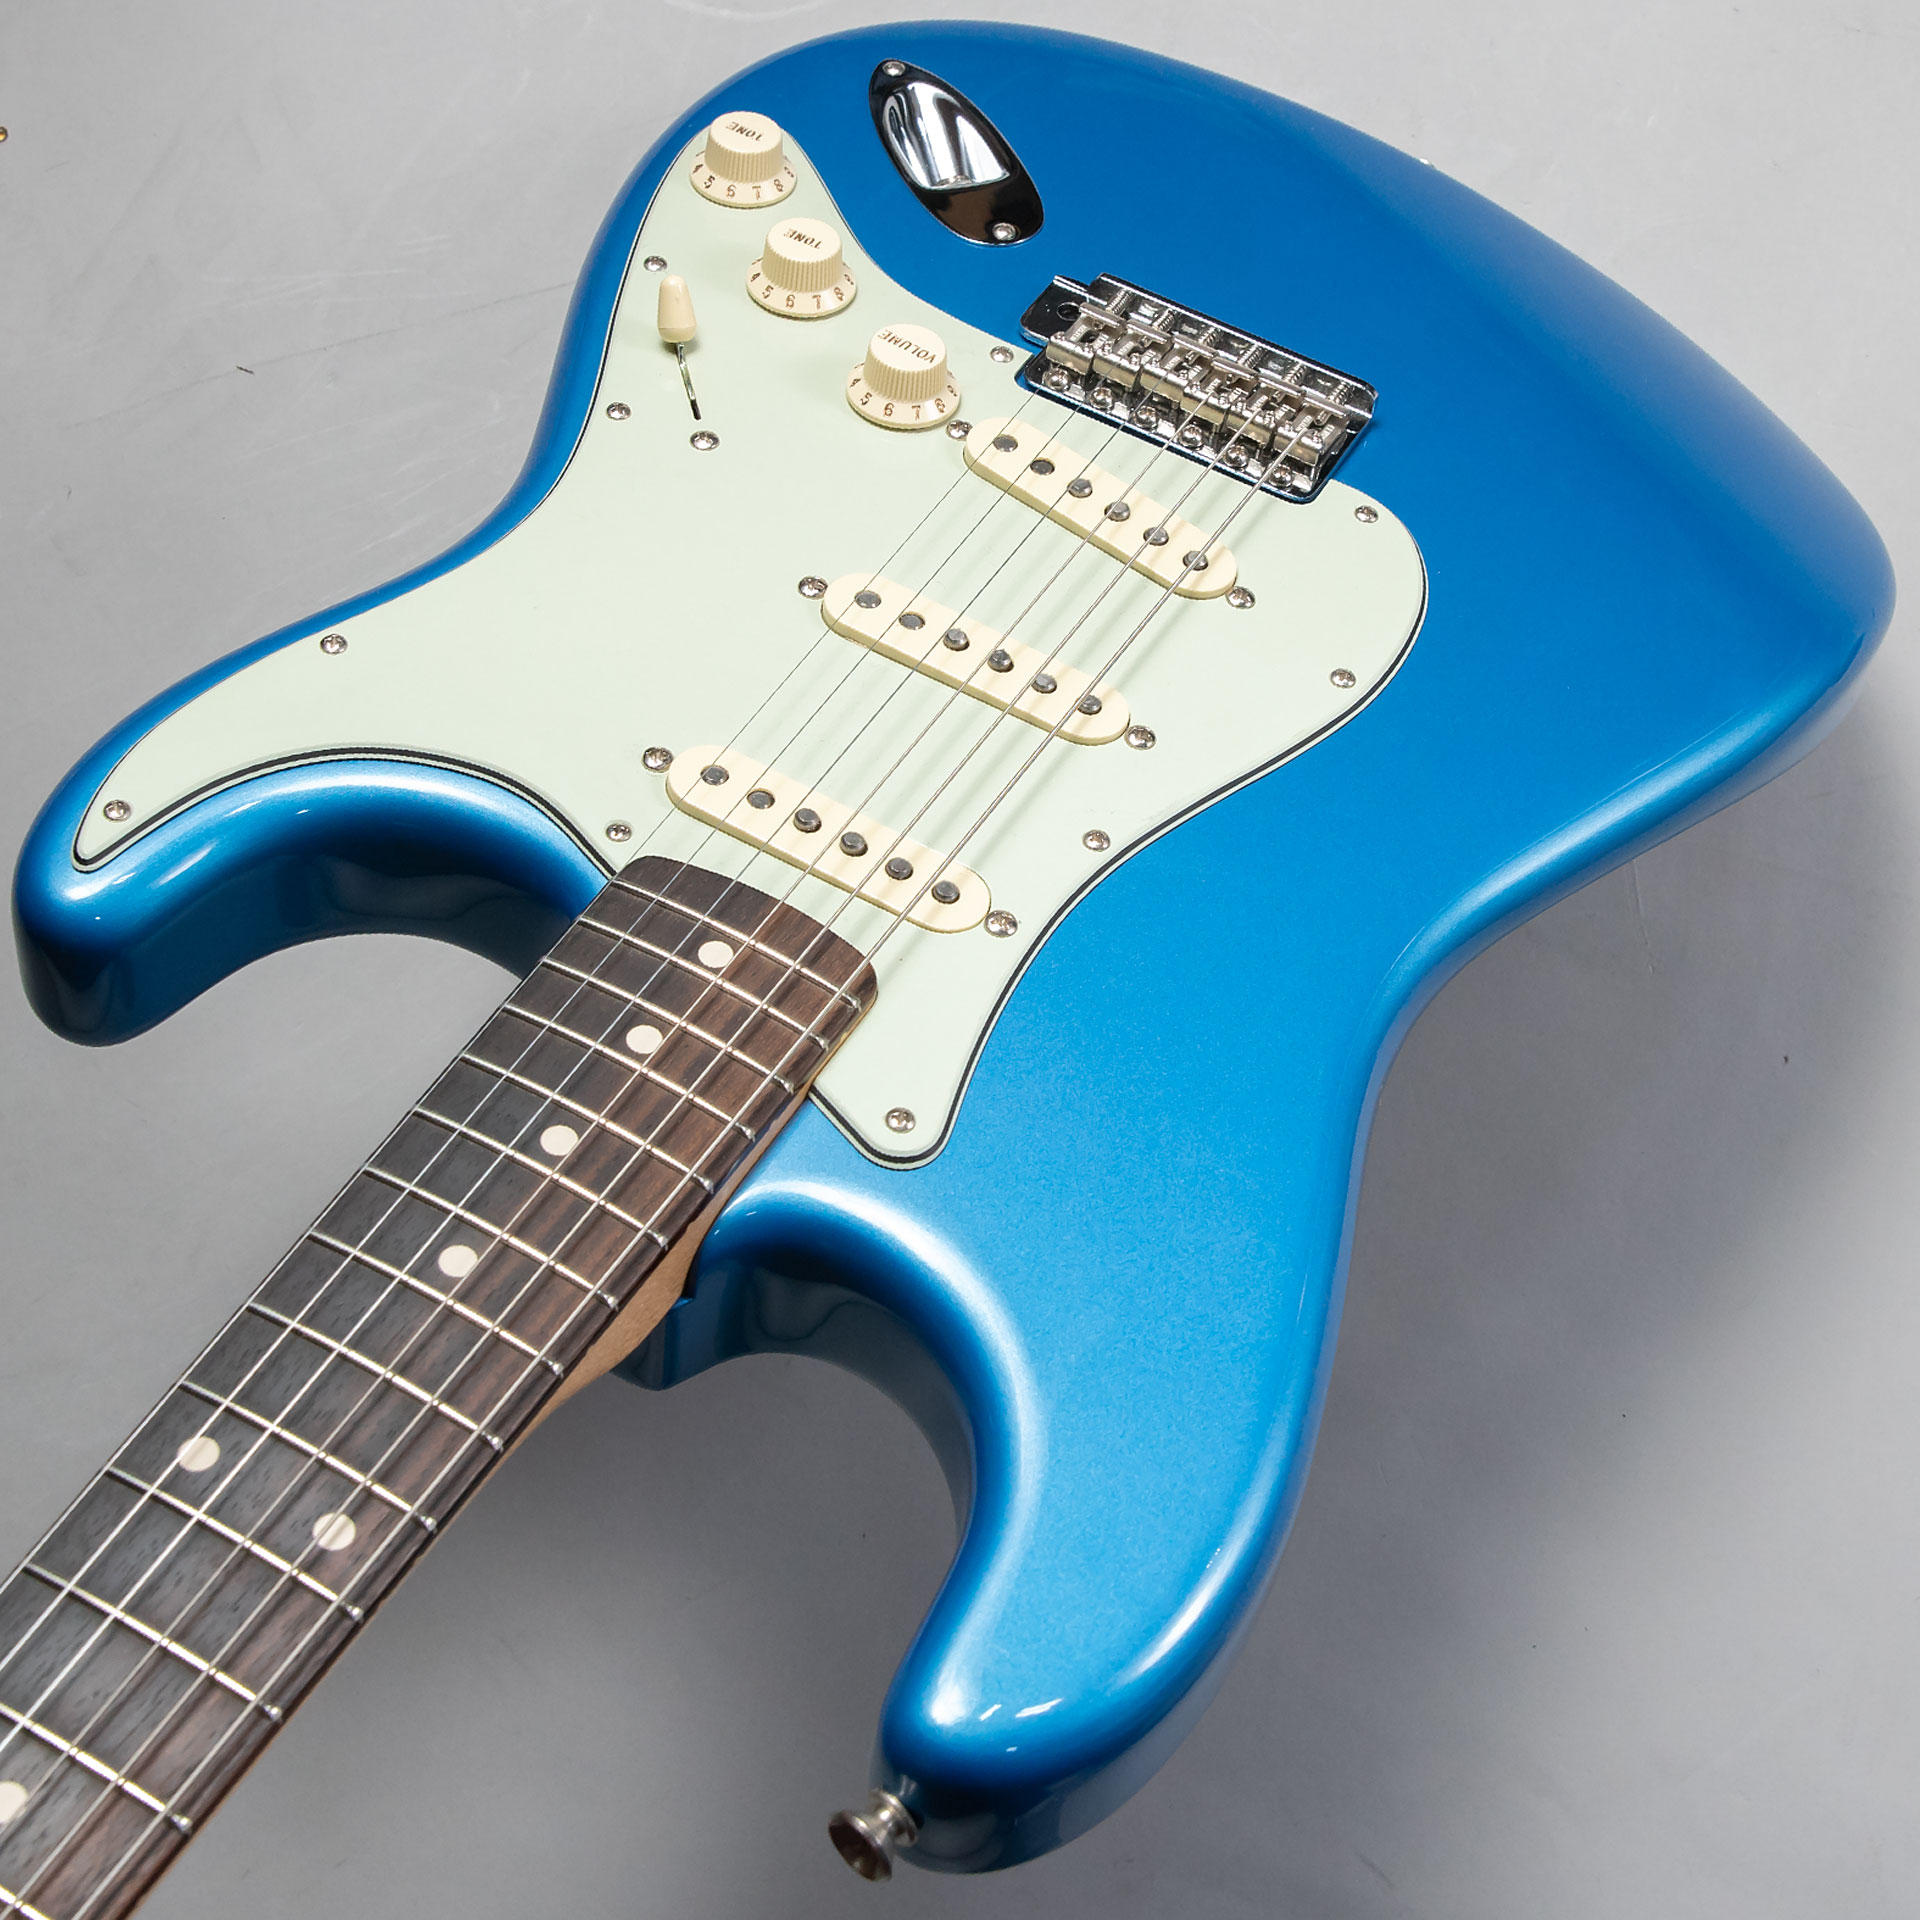 1960 Stratocaster NOS Lake Placid Blueのケース・その他画像